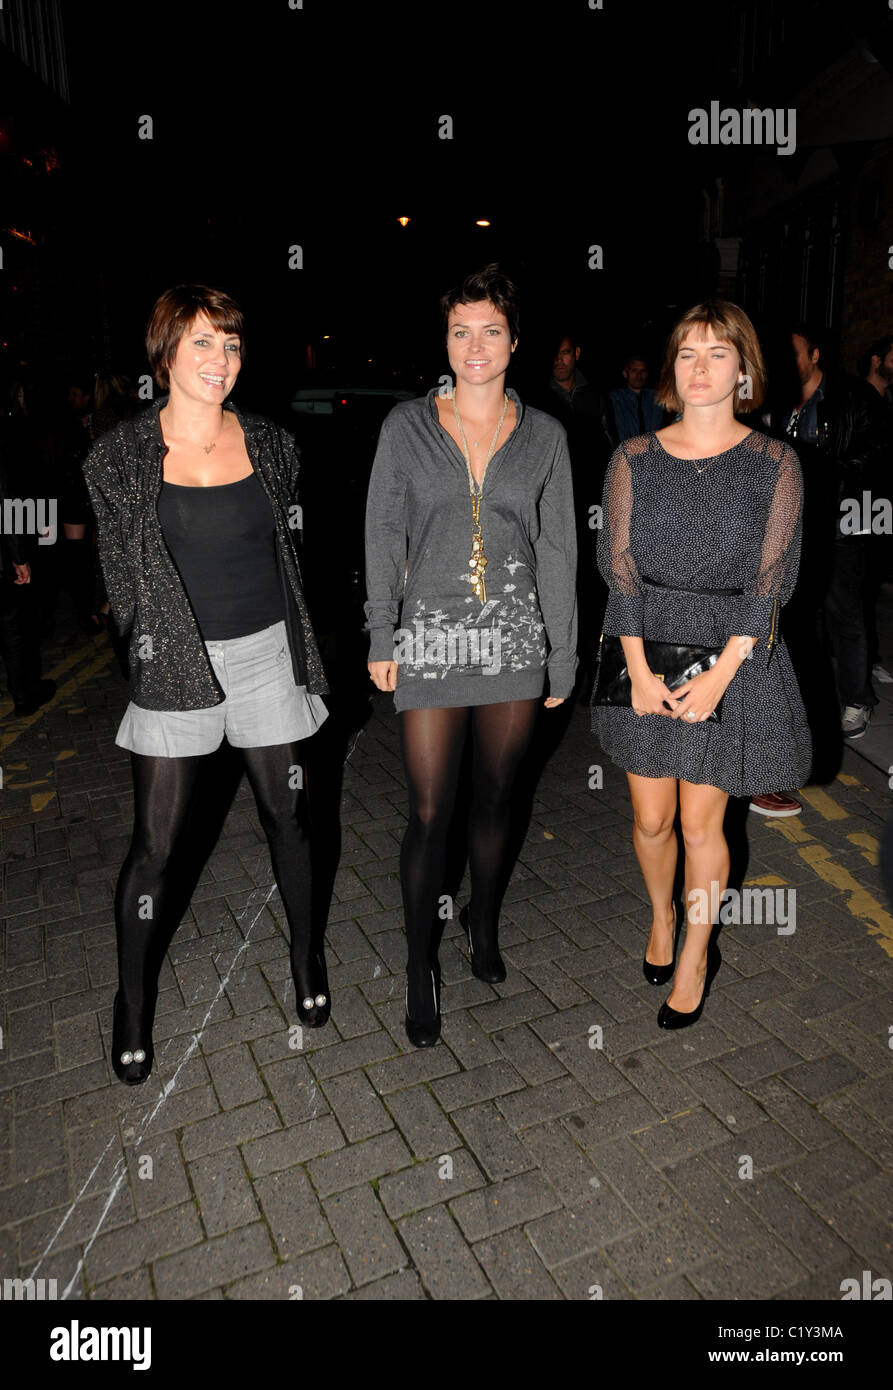 Sadie Frost with her sisters PRPS hearts start launch party at held at Start boutique London, England - 03.09.09 - Stock Image